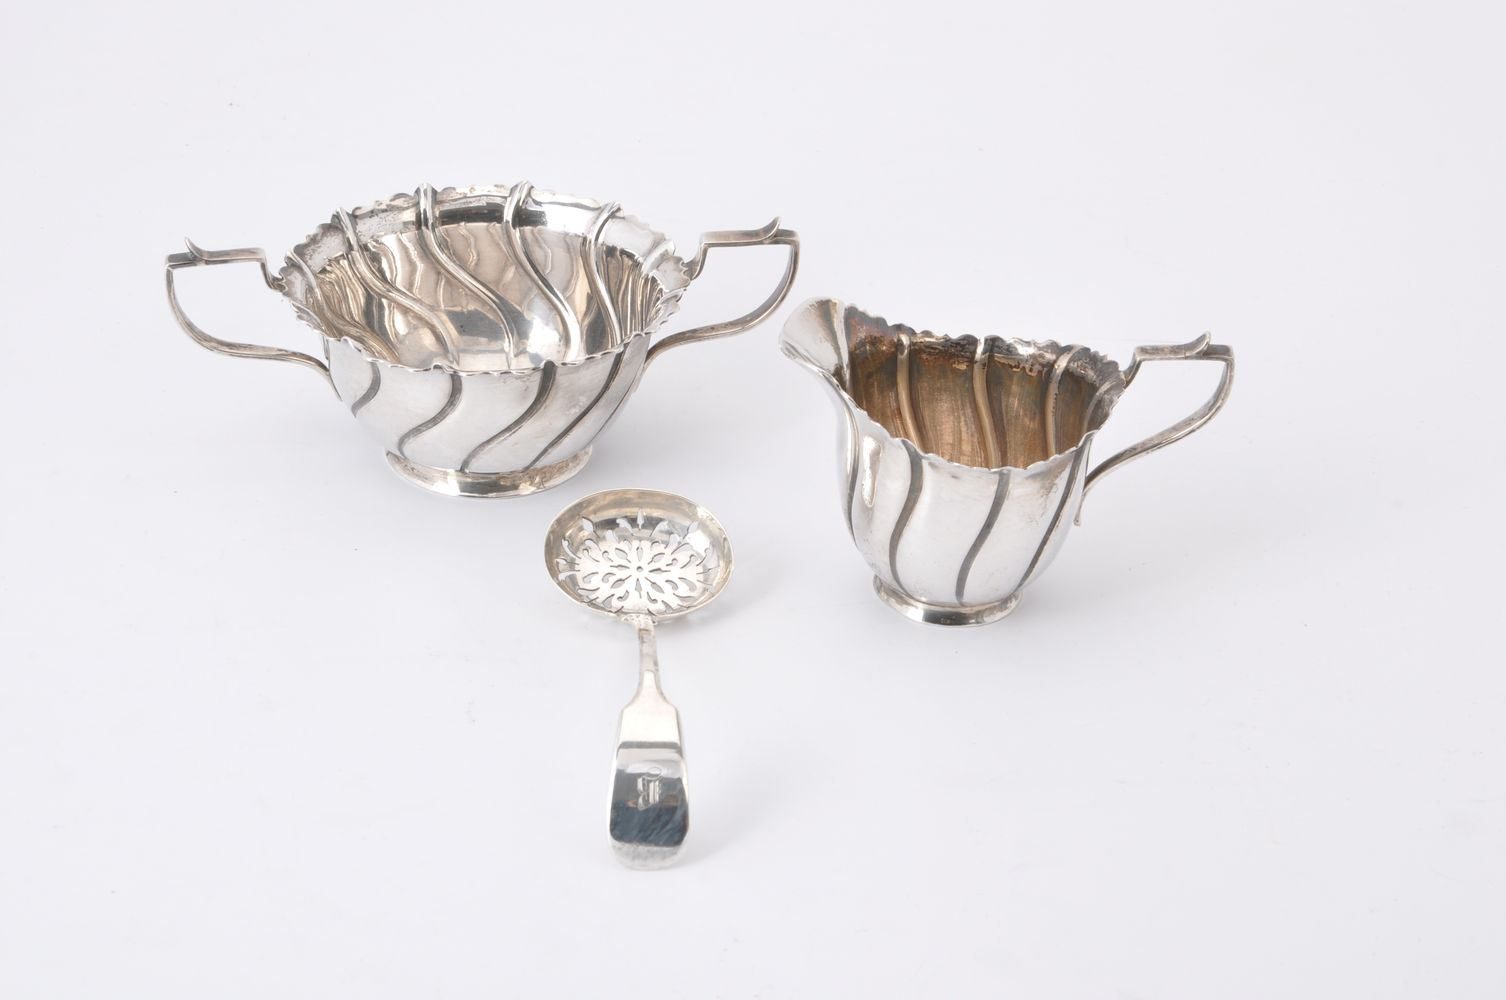 Lot 670 - A late Victorian Irish silver sugar bowl and milk jug by The Goldsmiths & Silversmiths Co. Ltd